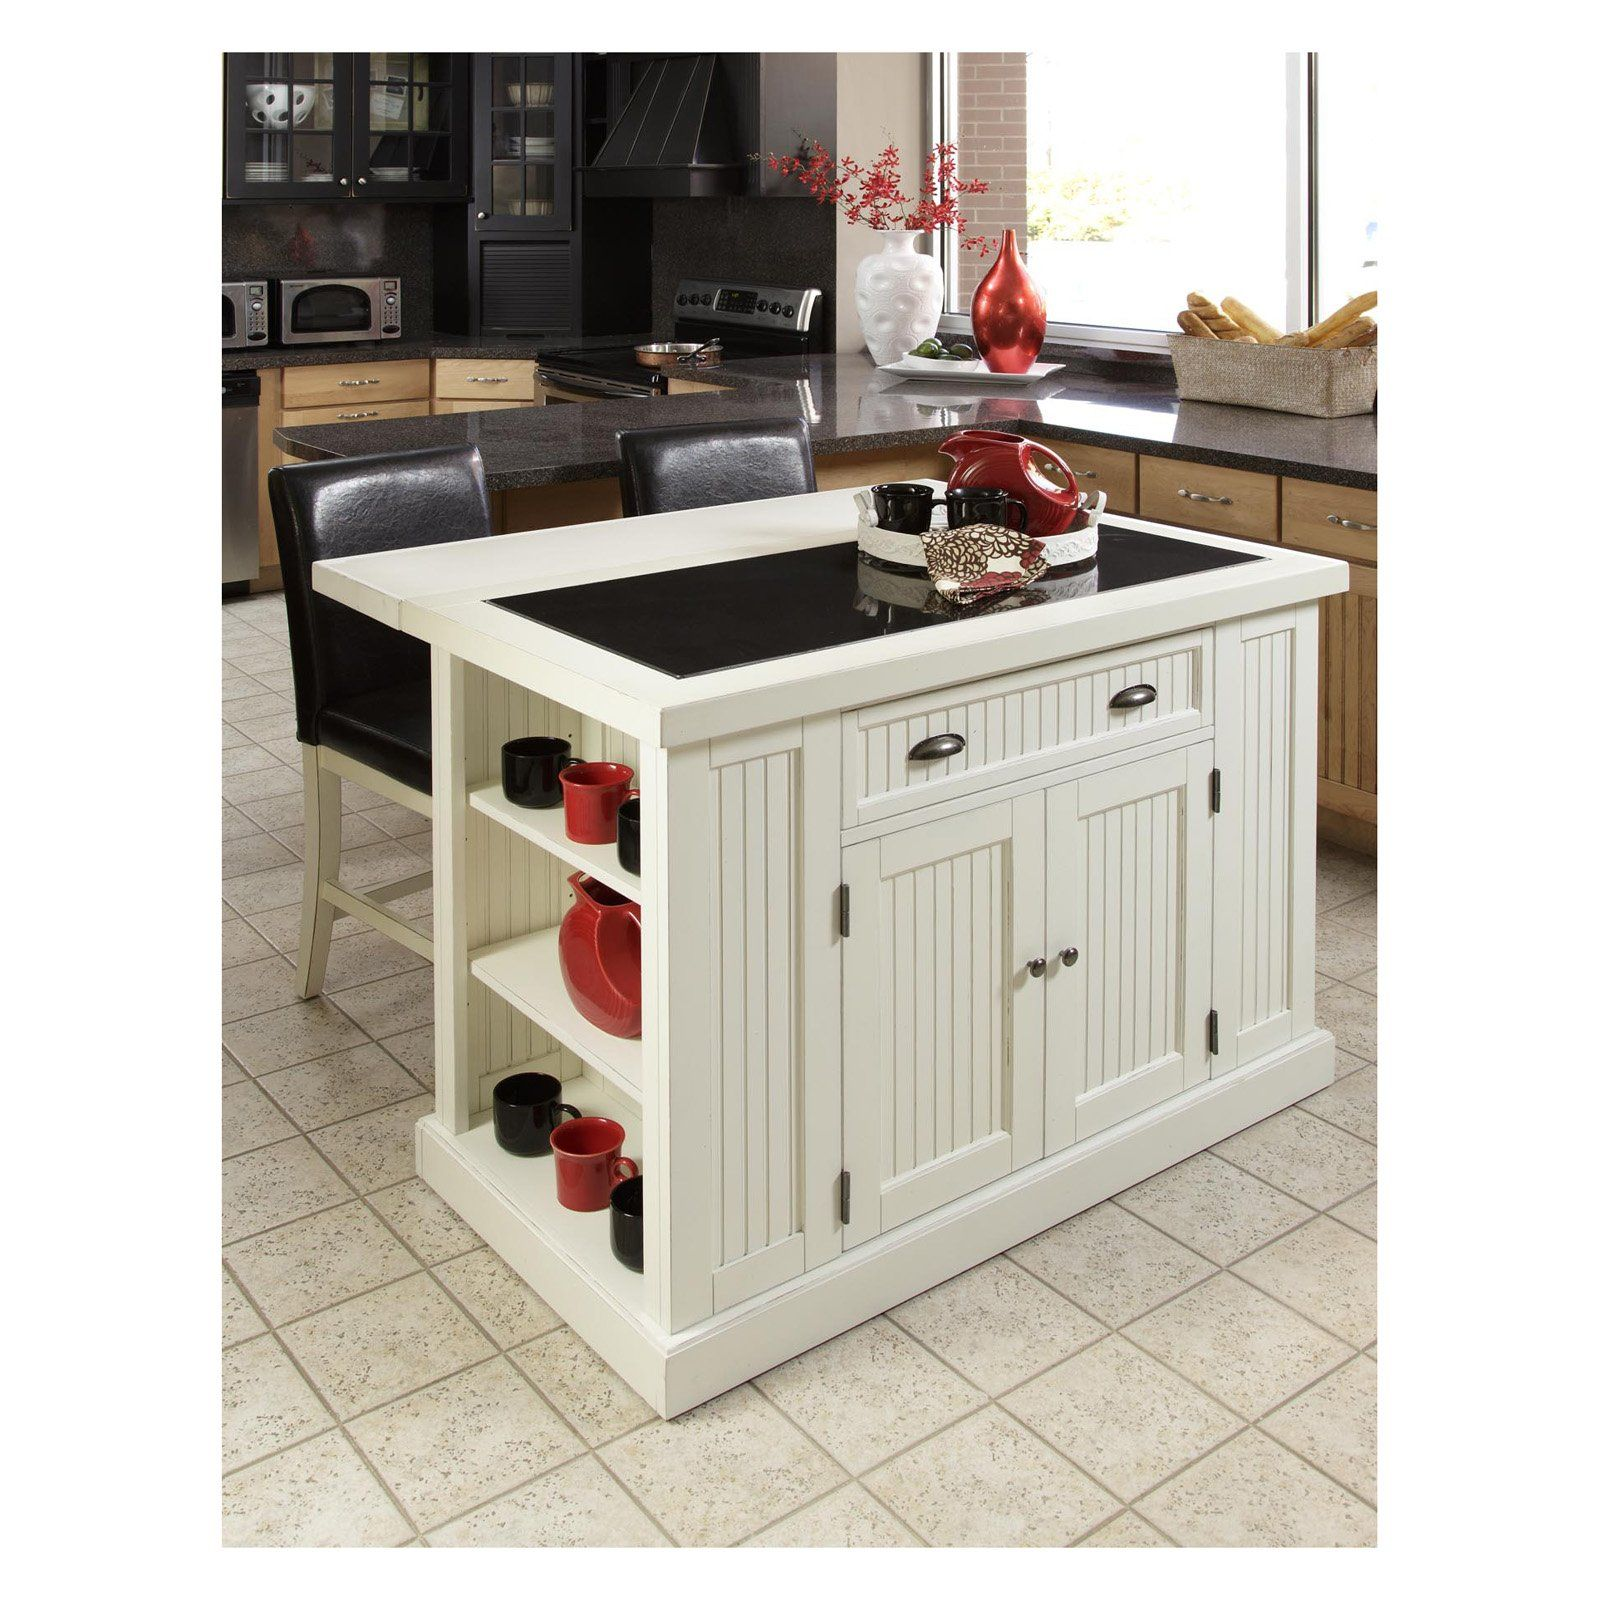 Home Styles Nantucket Kitchen Island With Two Stools Distressed White Portable Kitchen Island Kitchen Island With Granite Top Home Depot Kitchen